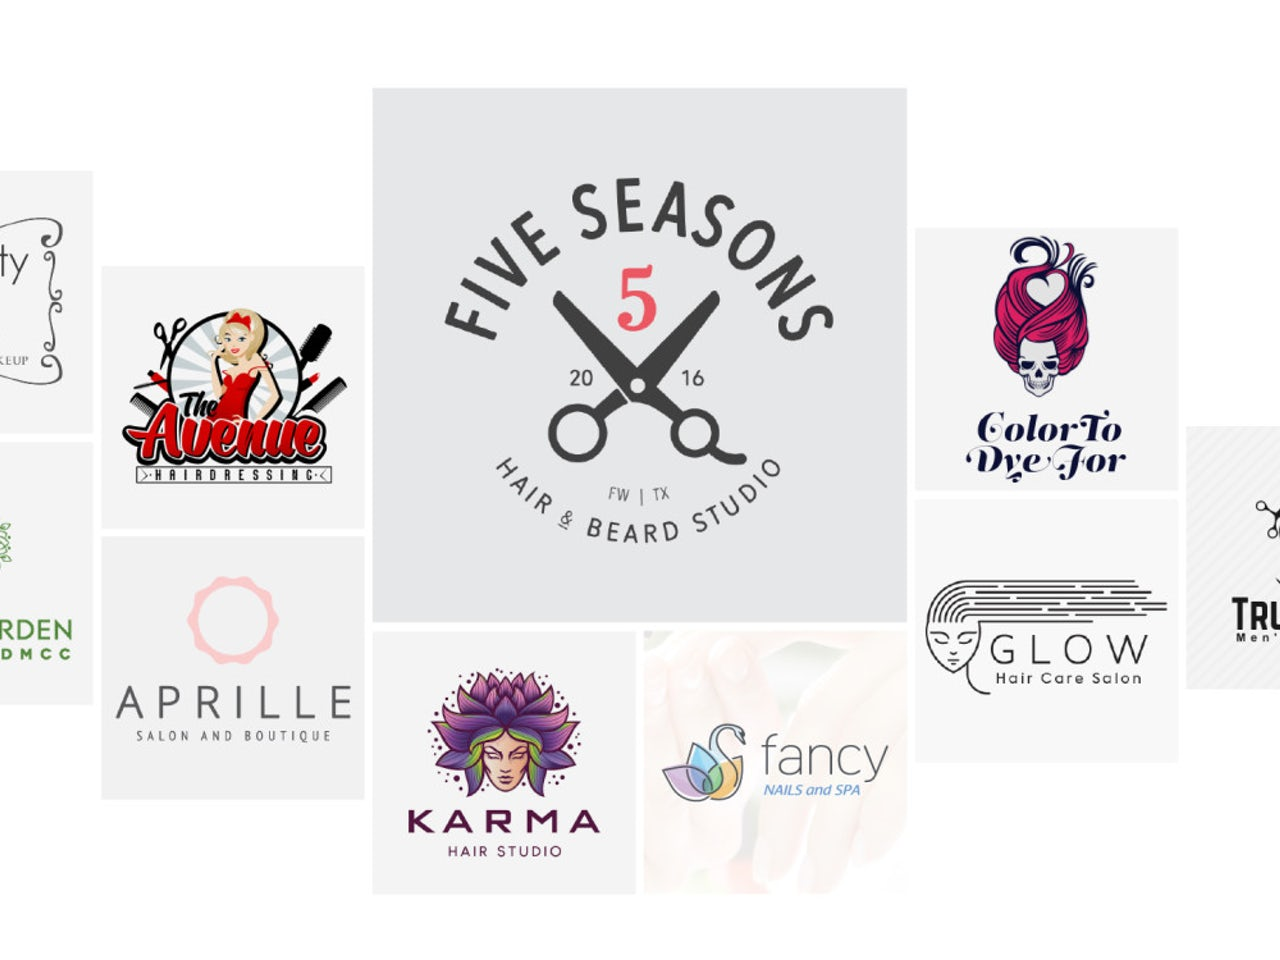 19 salon, stylist & hairdresser logos that will make you look your